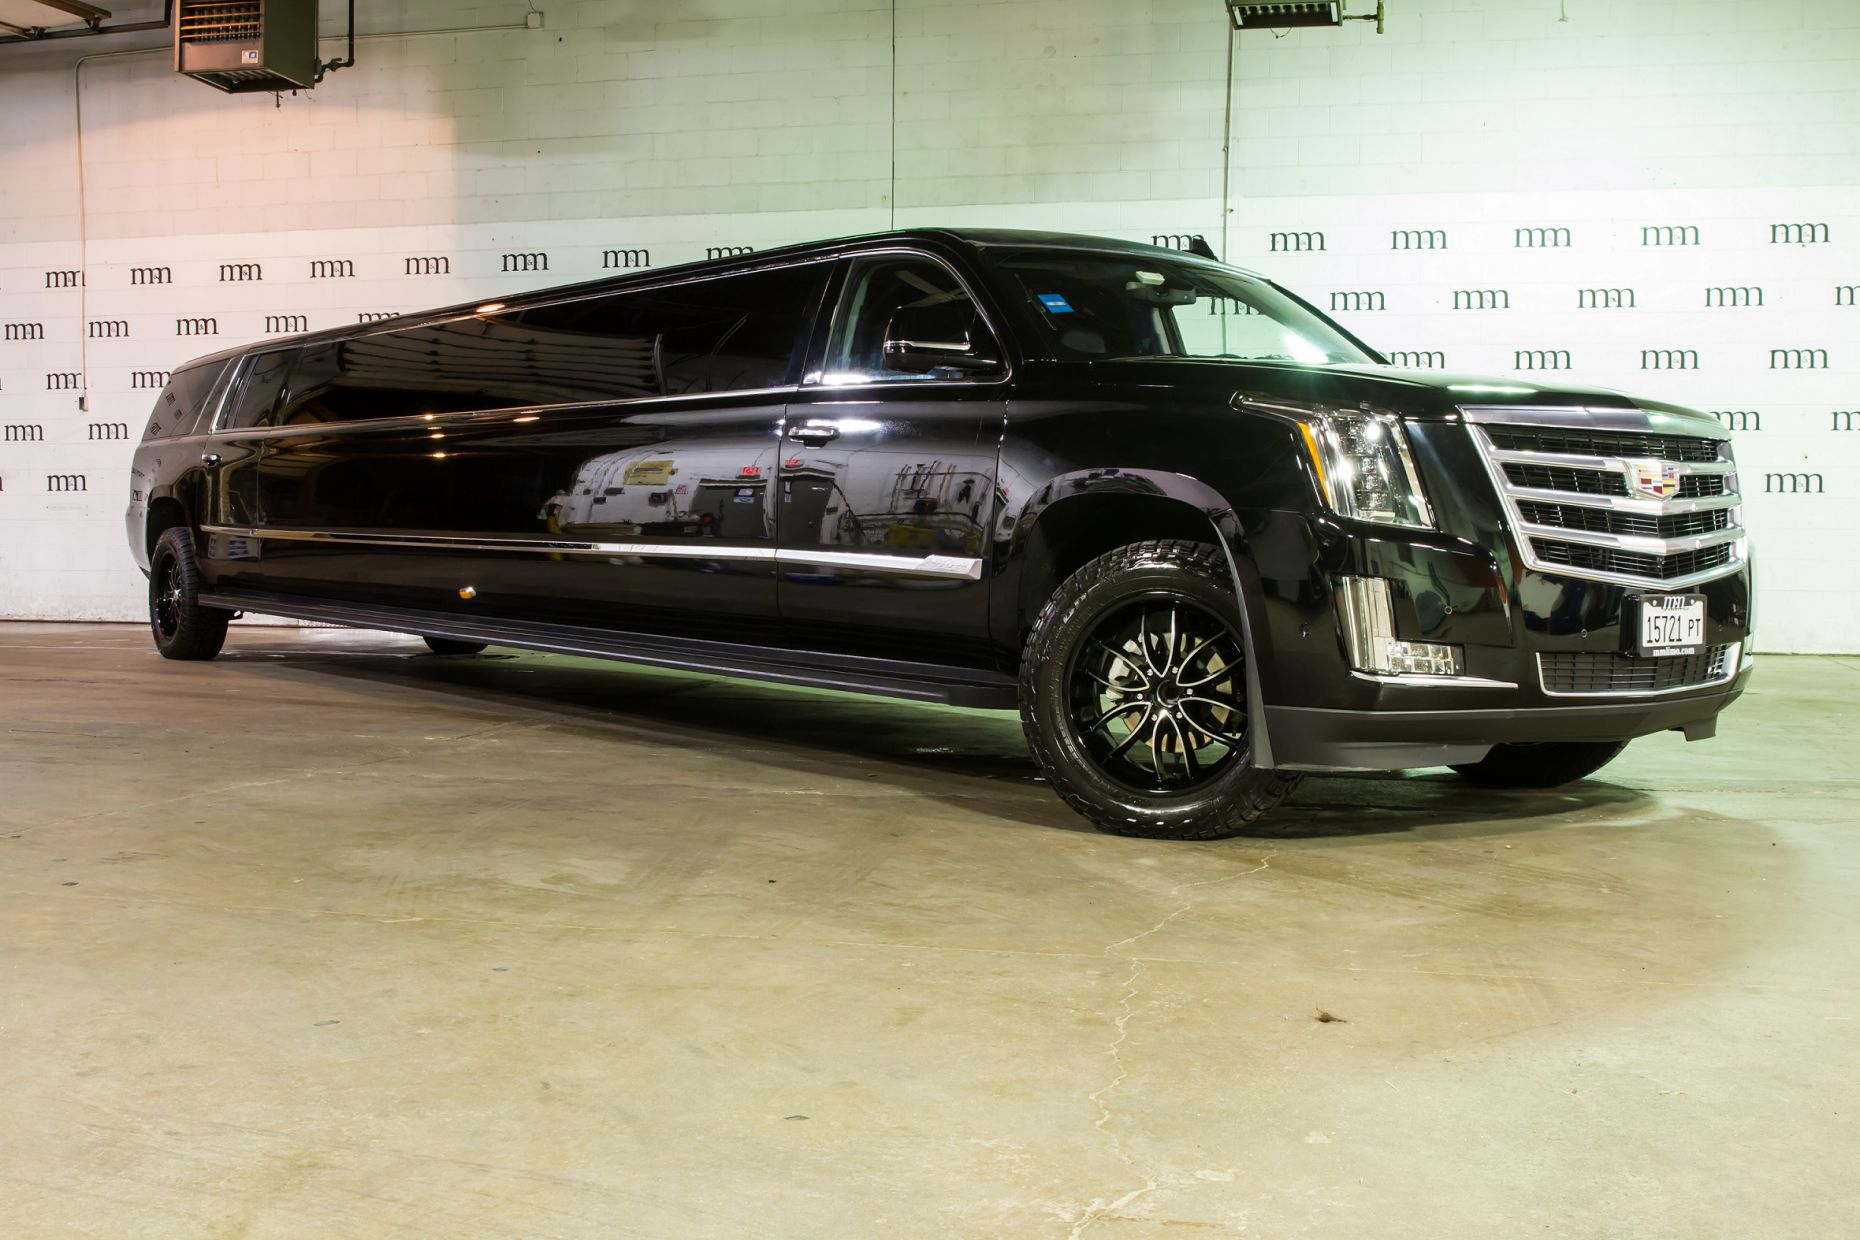 22 Passenger Cadillac Escalade Stretch Limo / Union, IL 60180   / Hourly $0.00